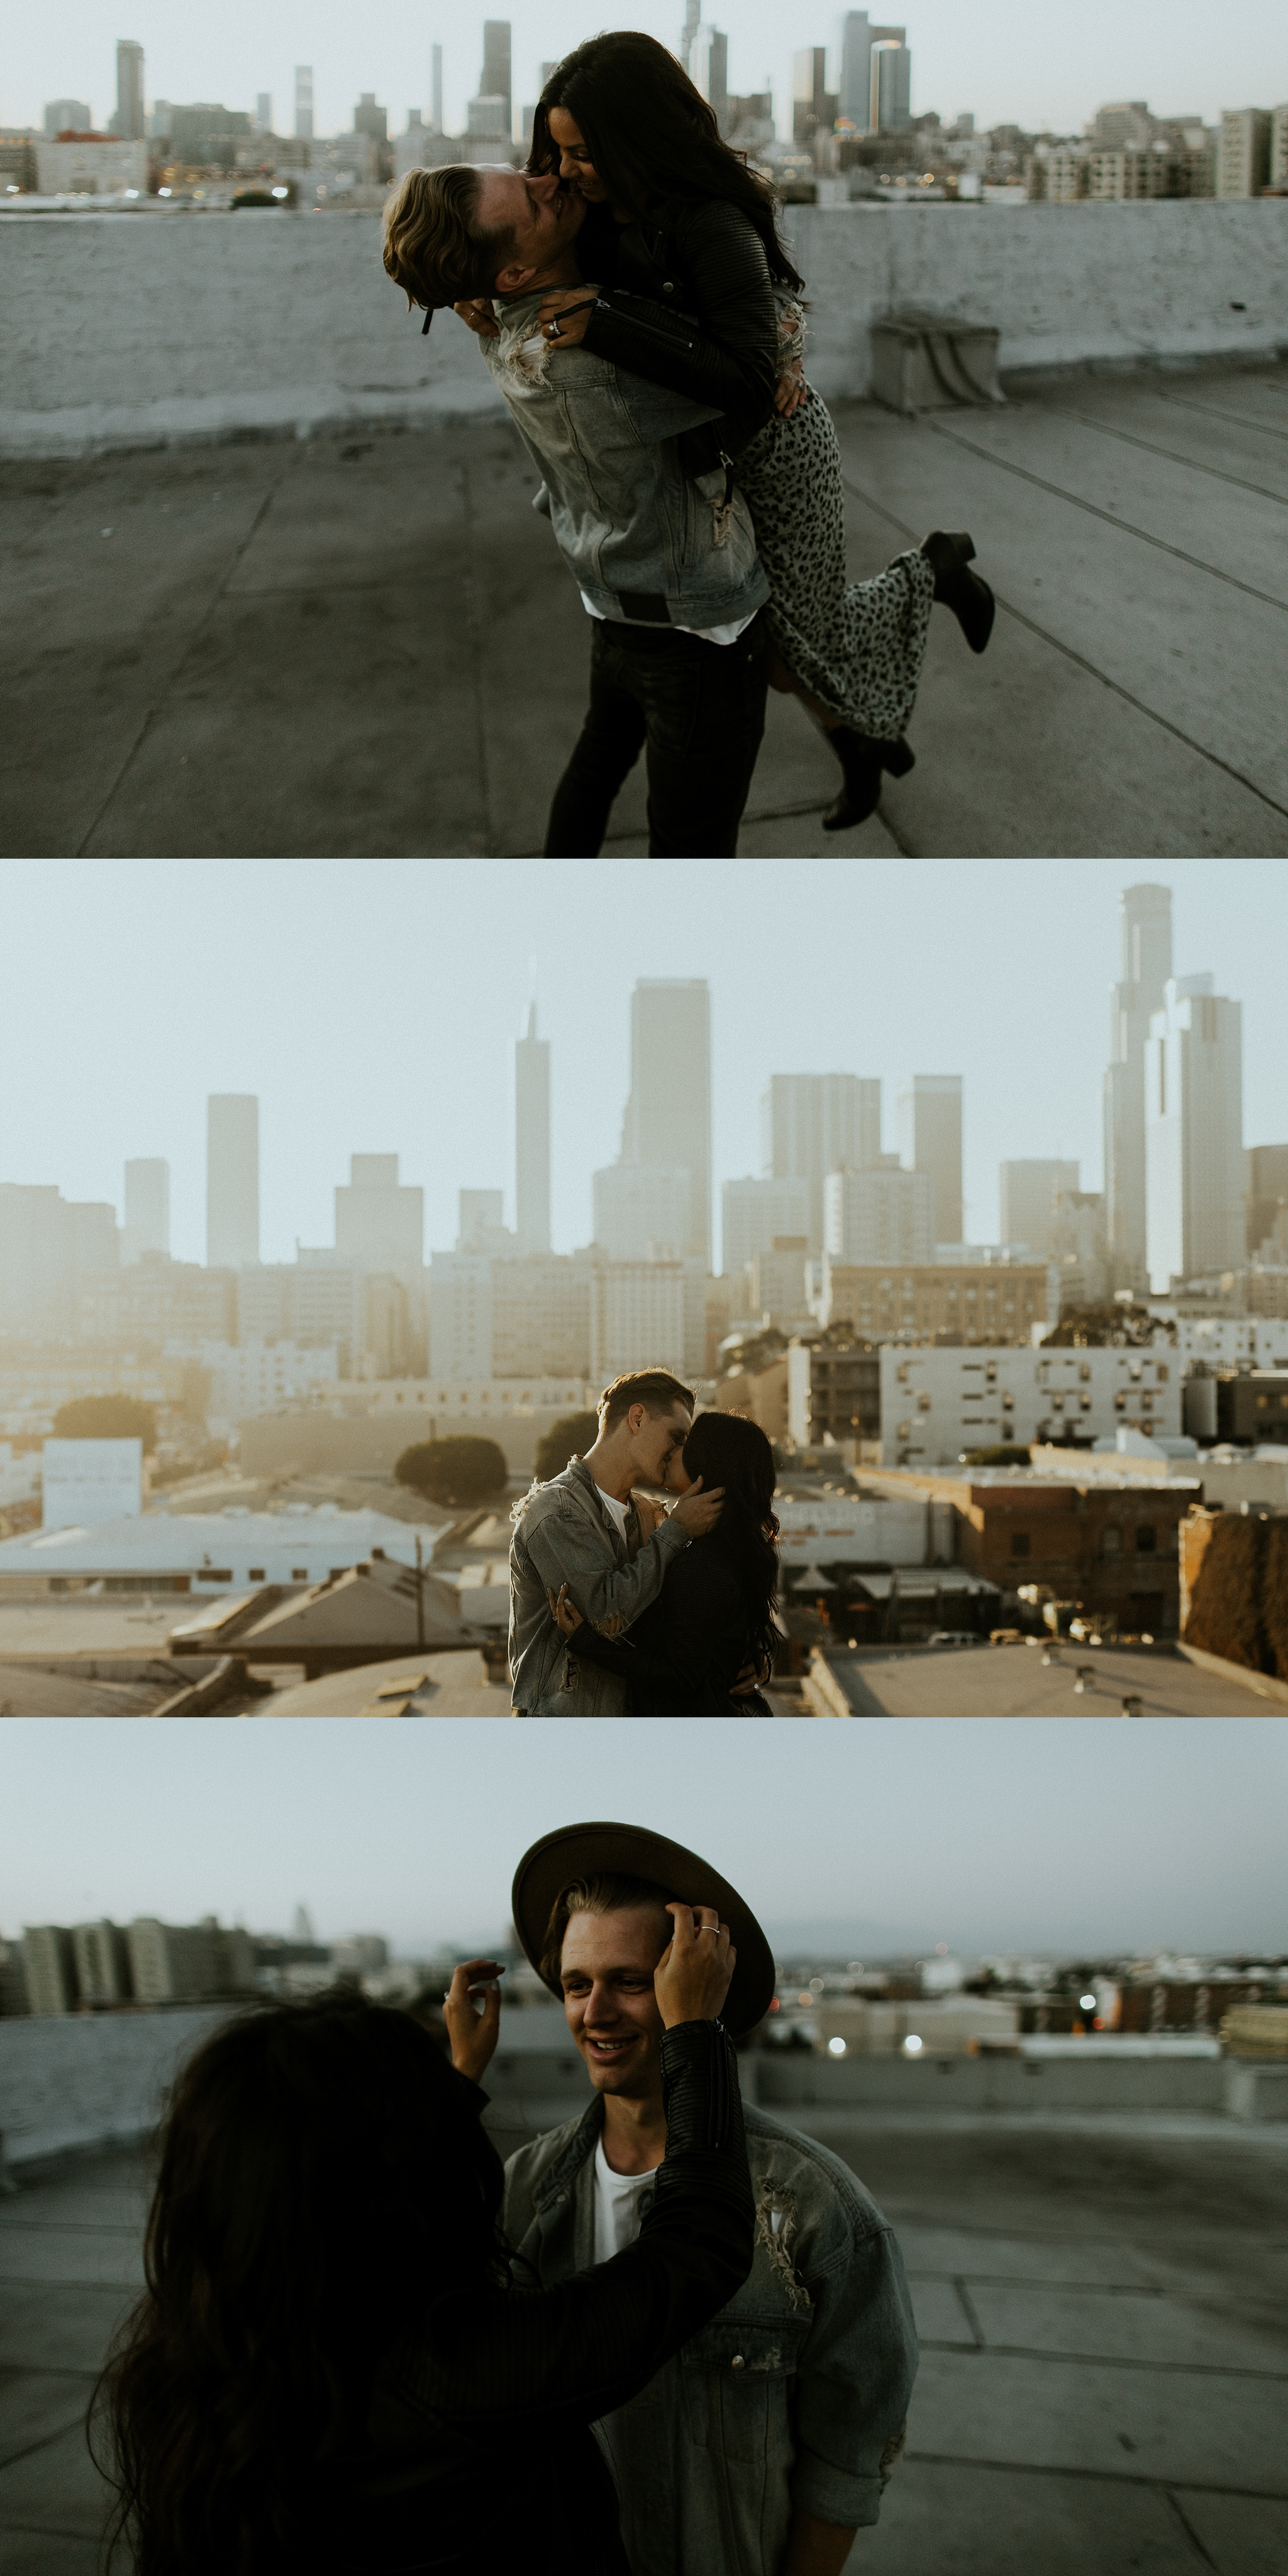 DTLA Rooftop Engagement Session by Trin Jensen Photography  - Los Angeles Wedding Photographer_0044.jpg